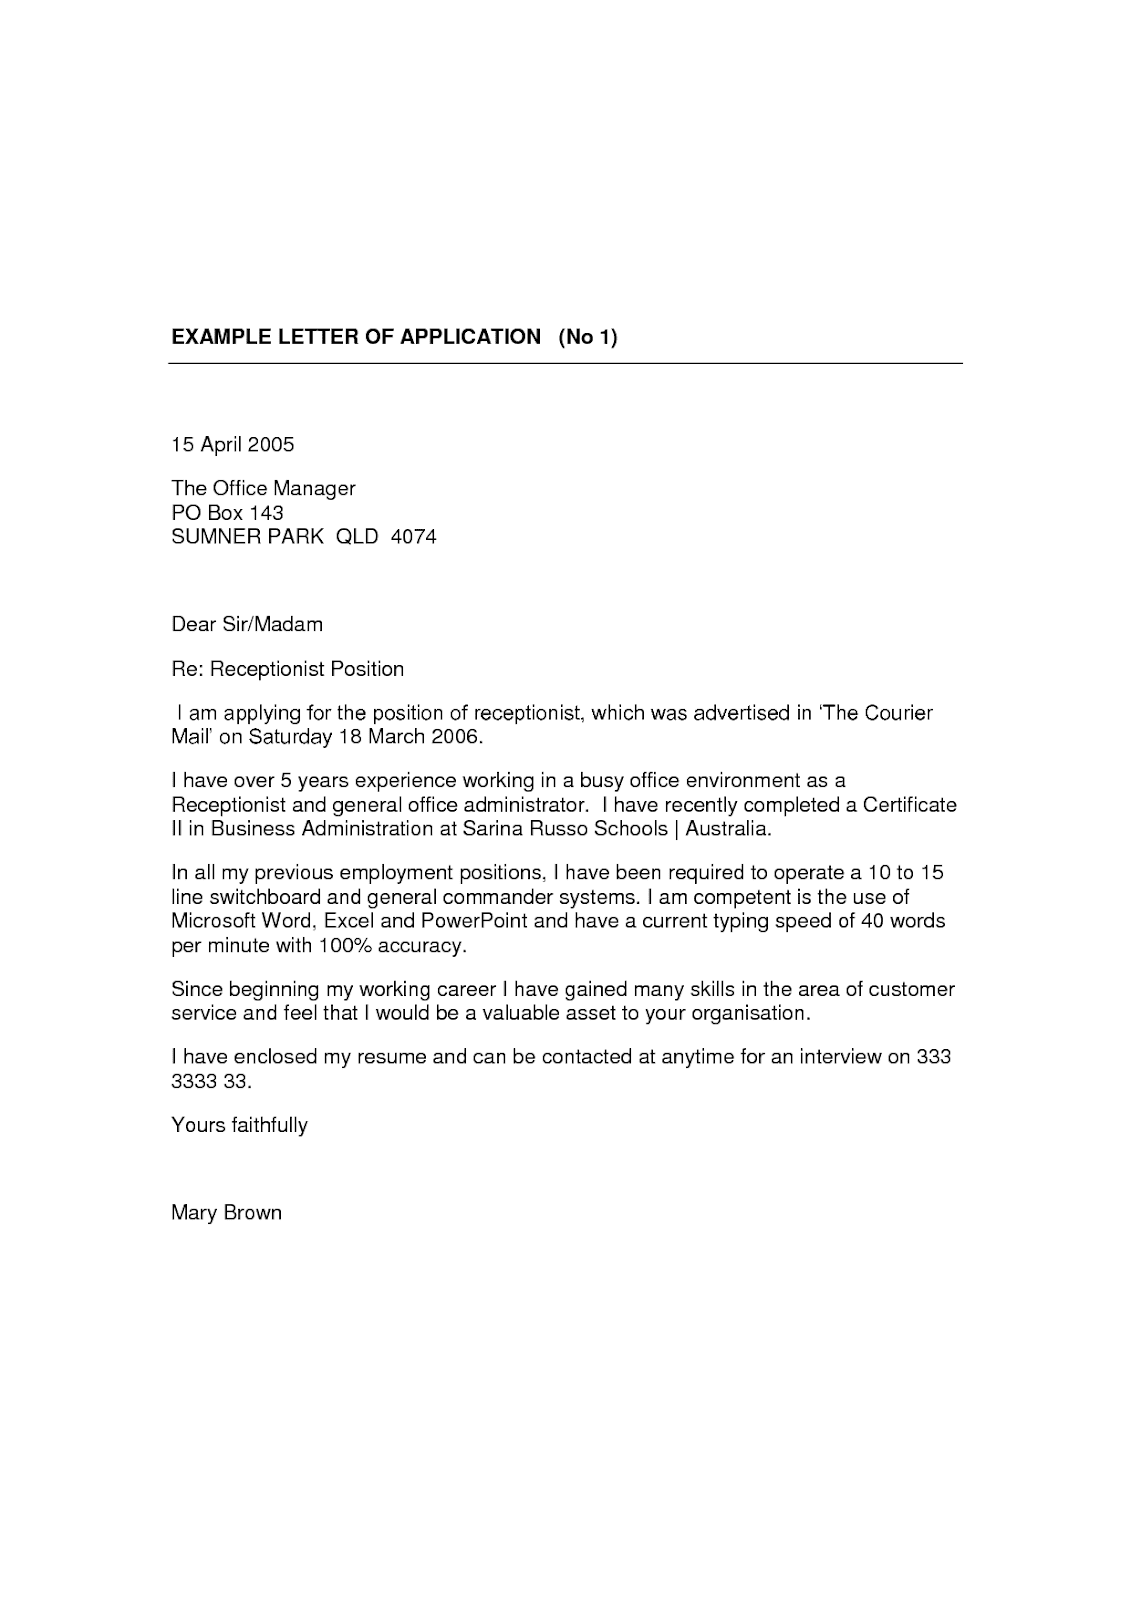 Medical Receptionist Cover Letter No Experience